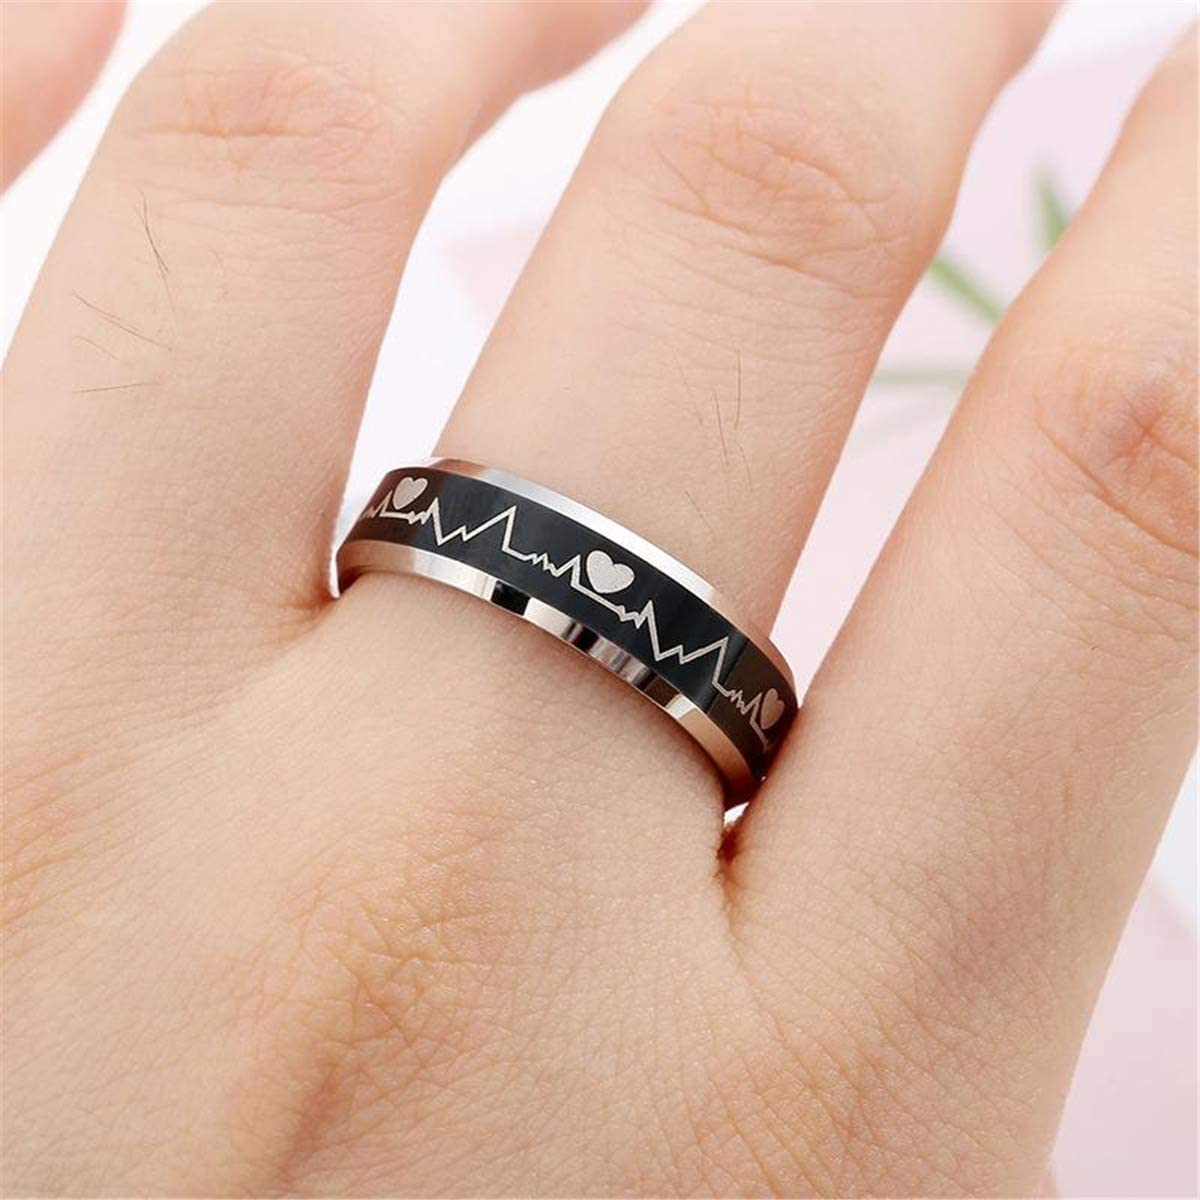 nylry 4Pcs Stainless Steel Fidget Spinner Rings for Women Men Sun and Moon Ring Chain Cool Relieving Anxiety Ring Wedding Promise Band Size 6-10